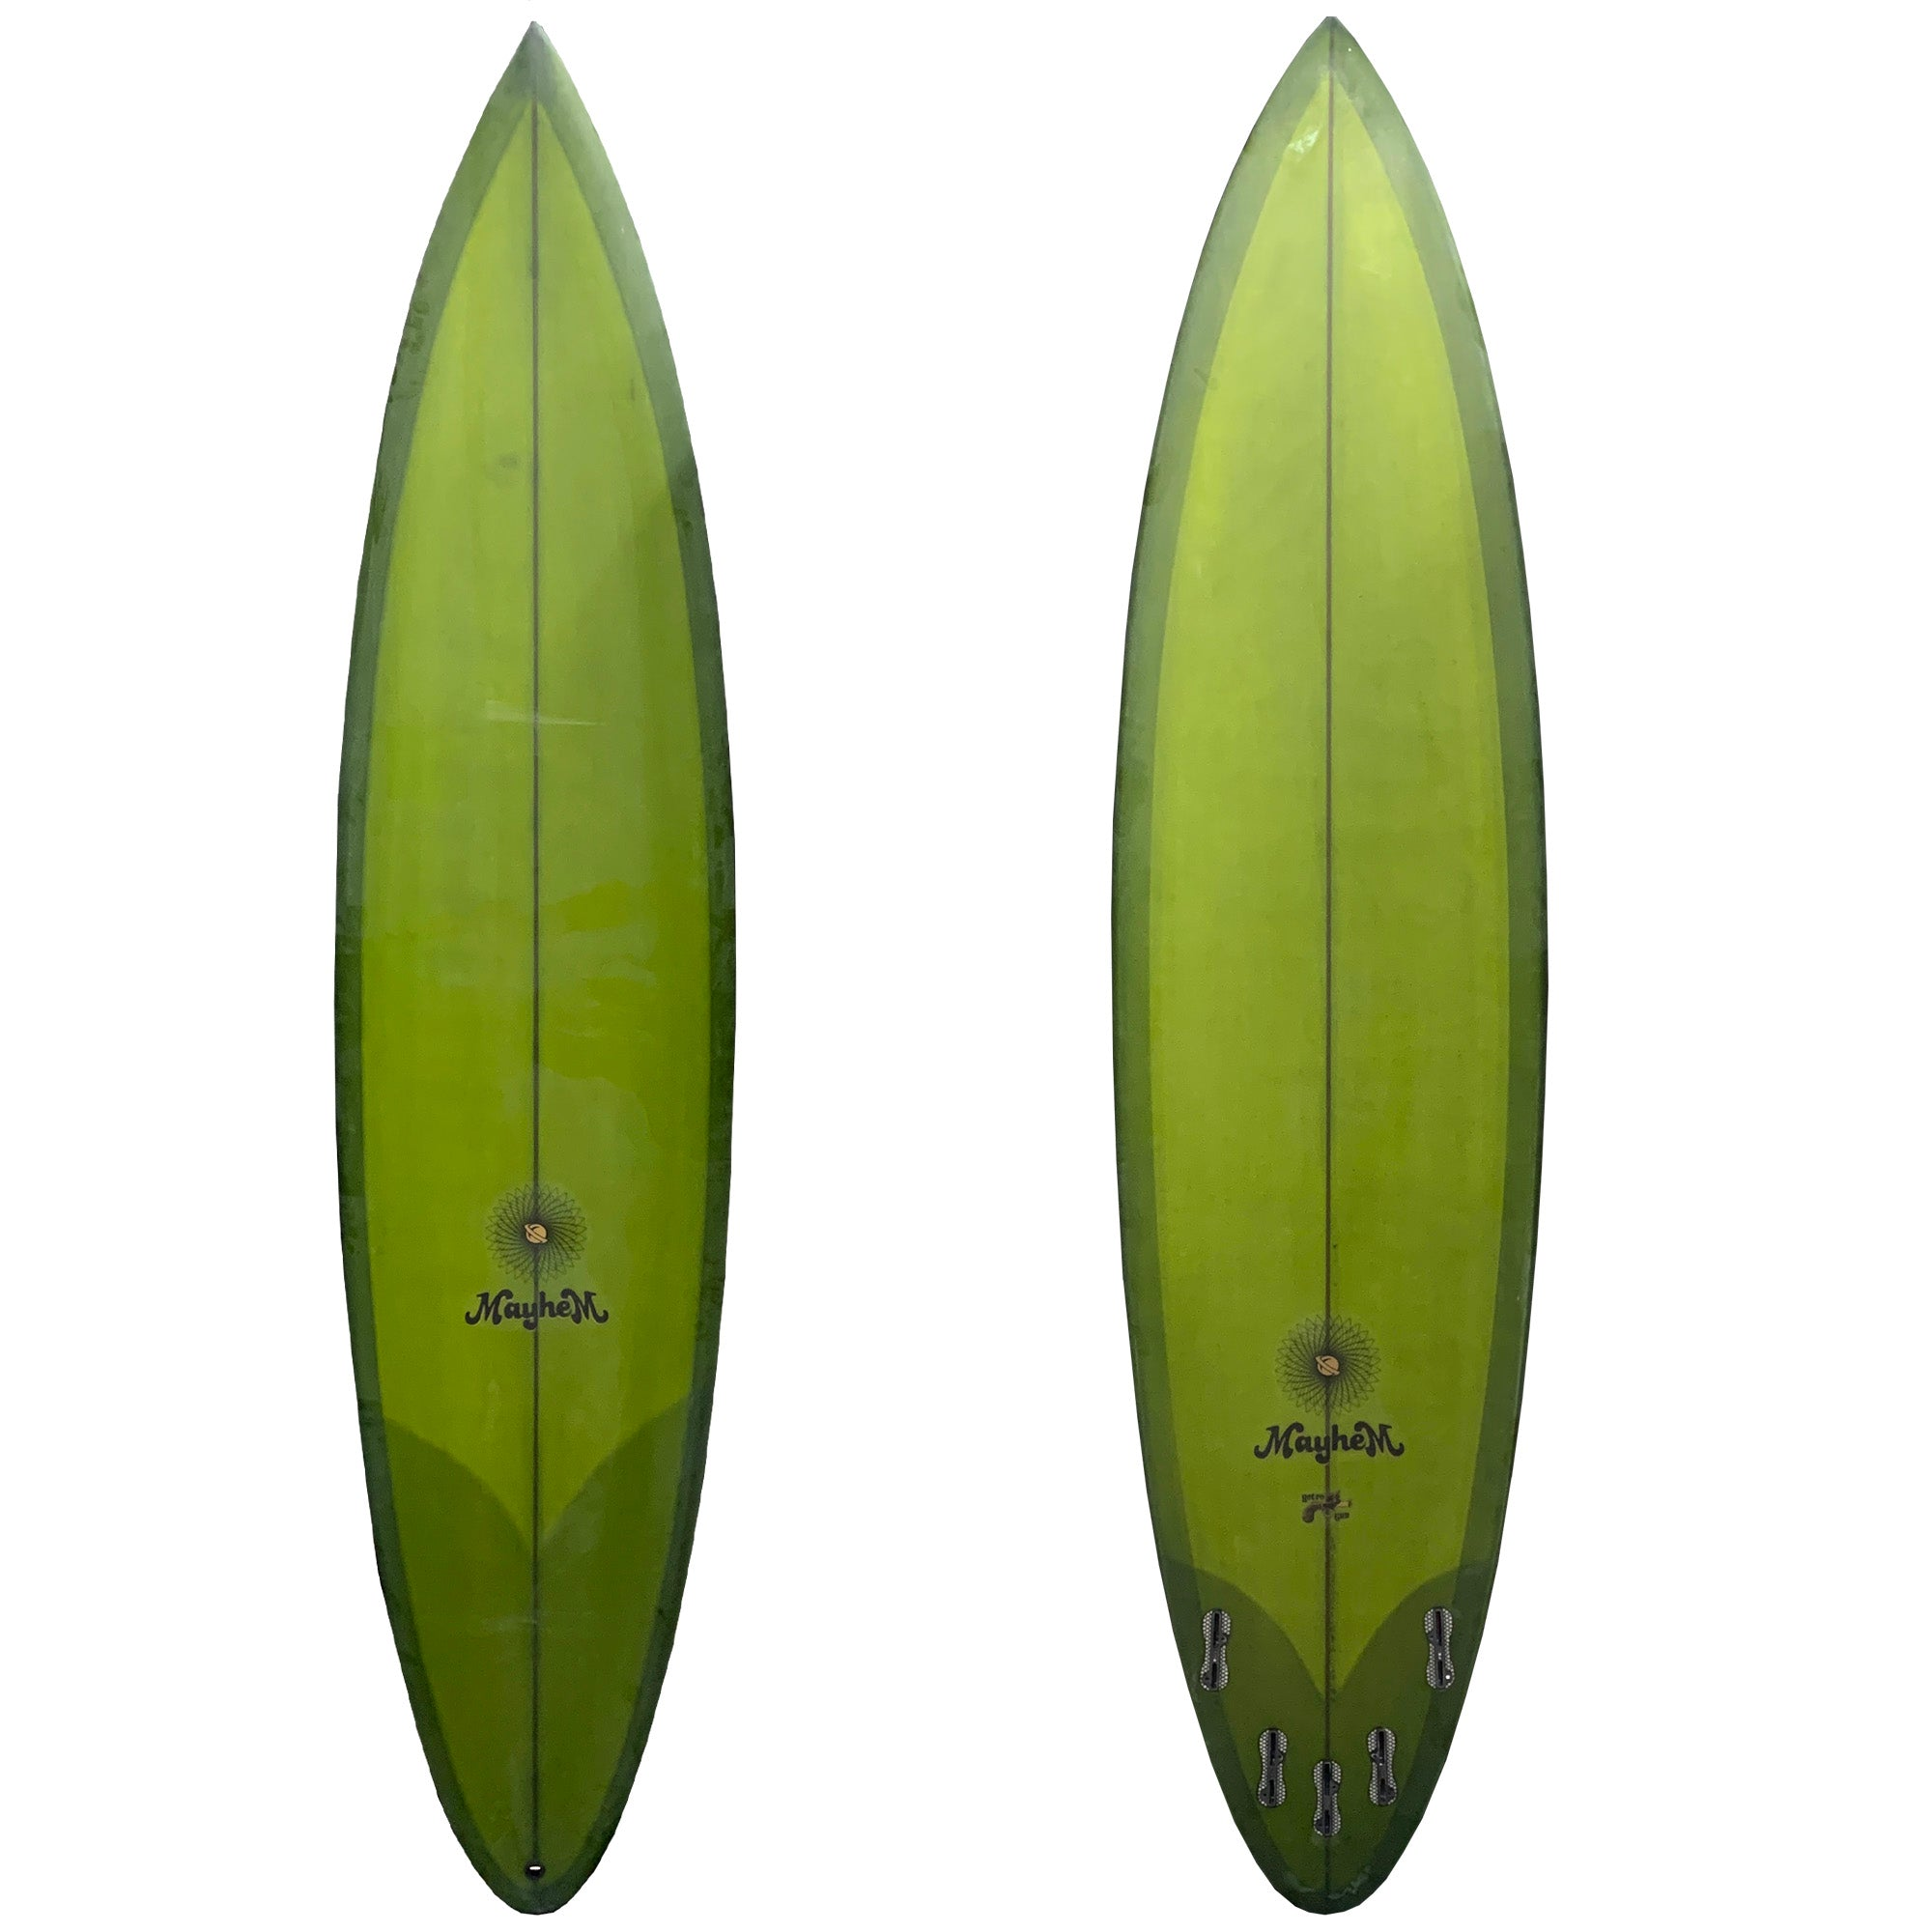 Lost Retro Gun Surfboard - FCS II